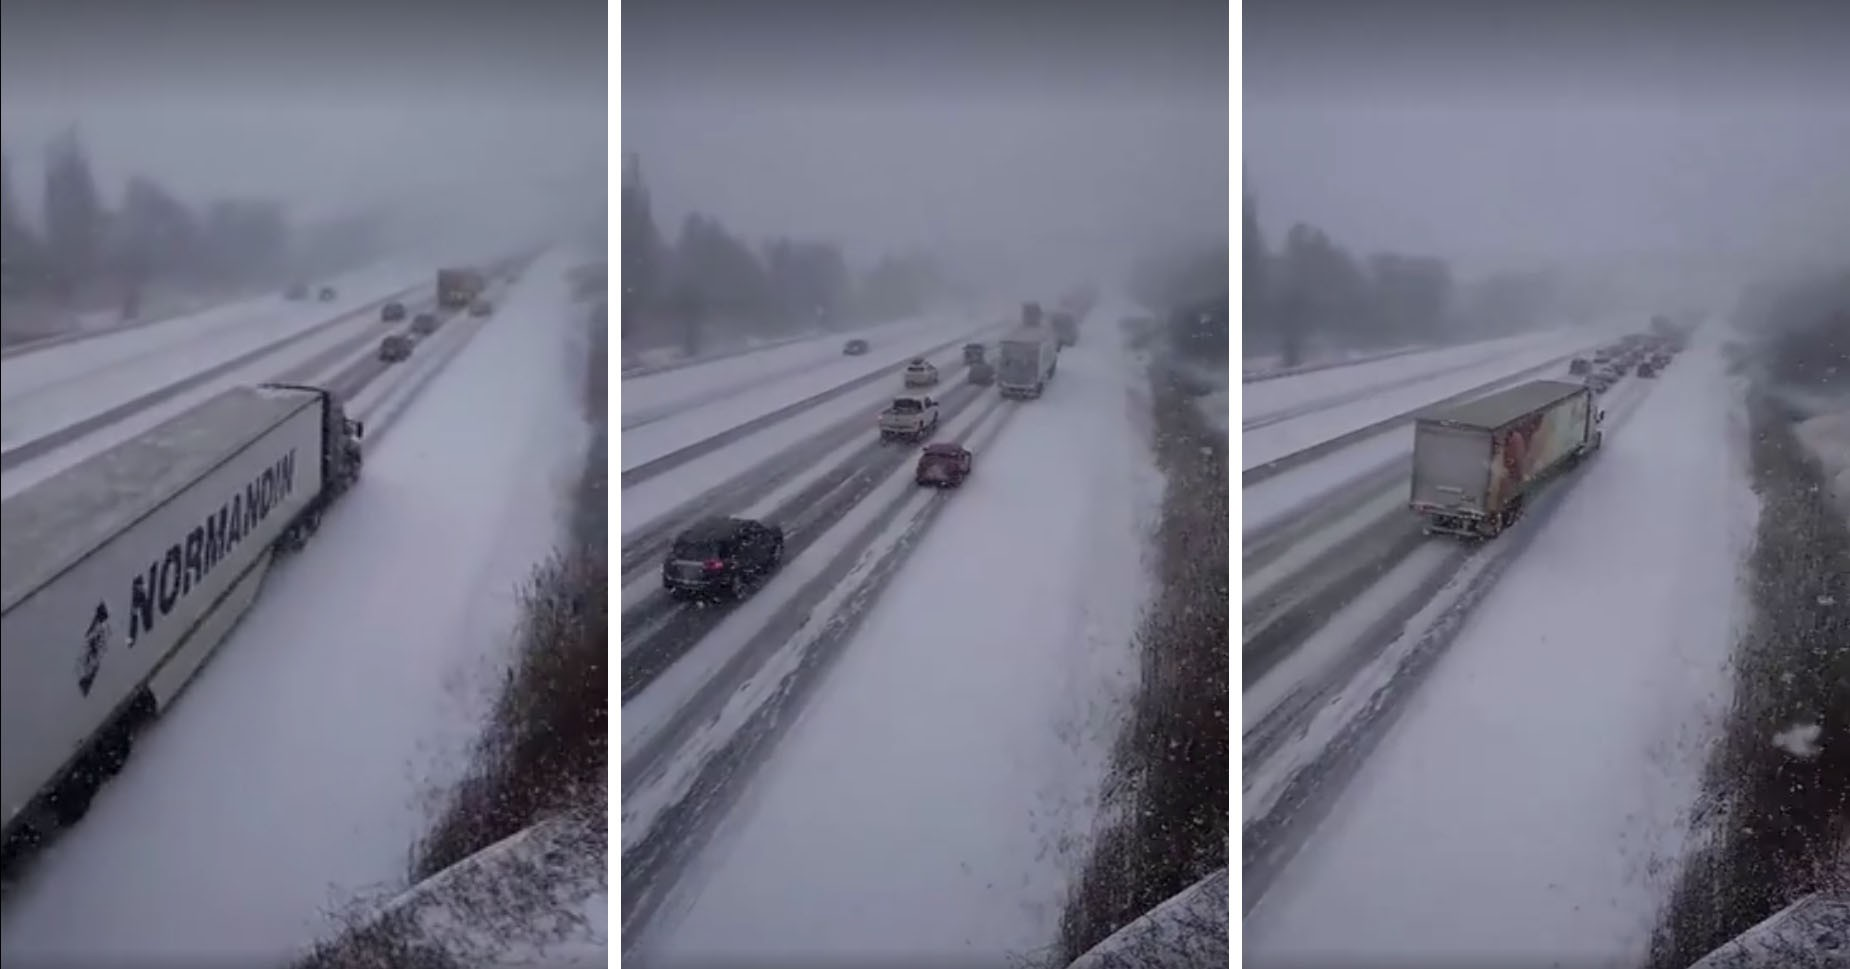 20 Car Pileup on Snowy Canadian Highway Involving a Semi Is Truly